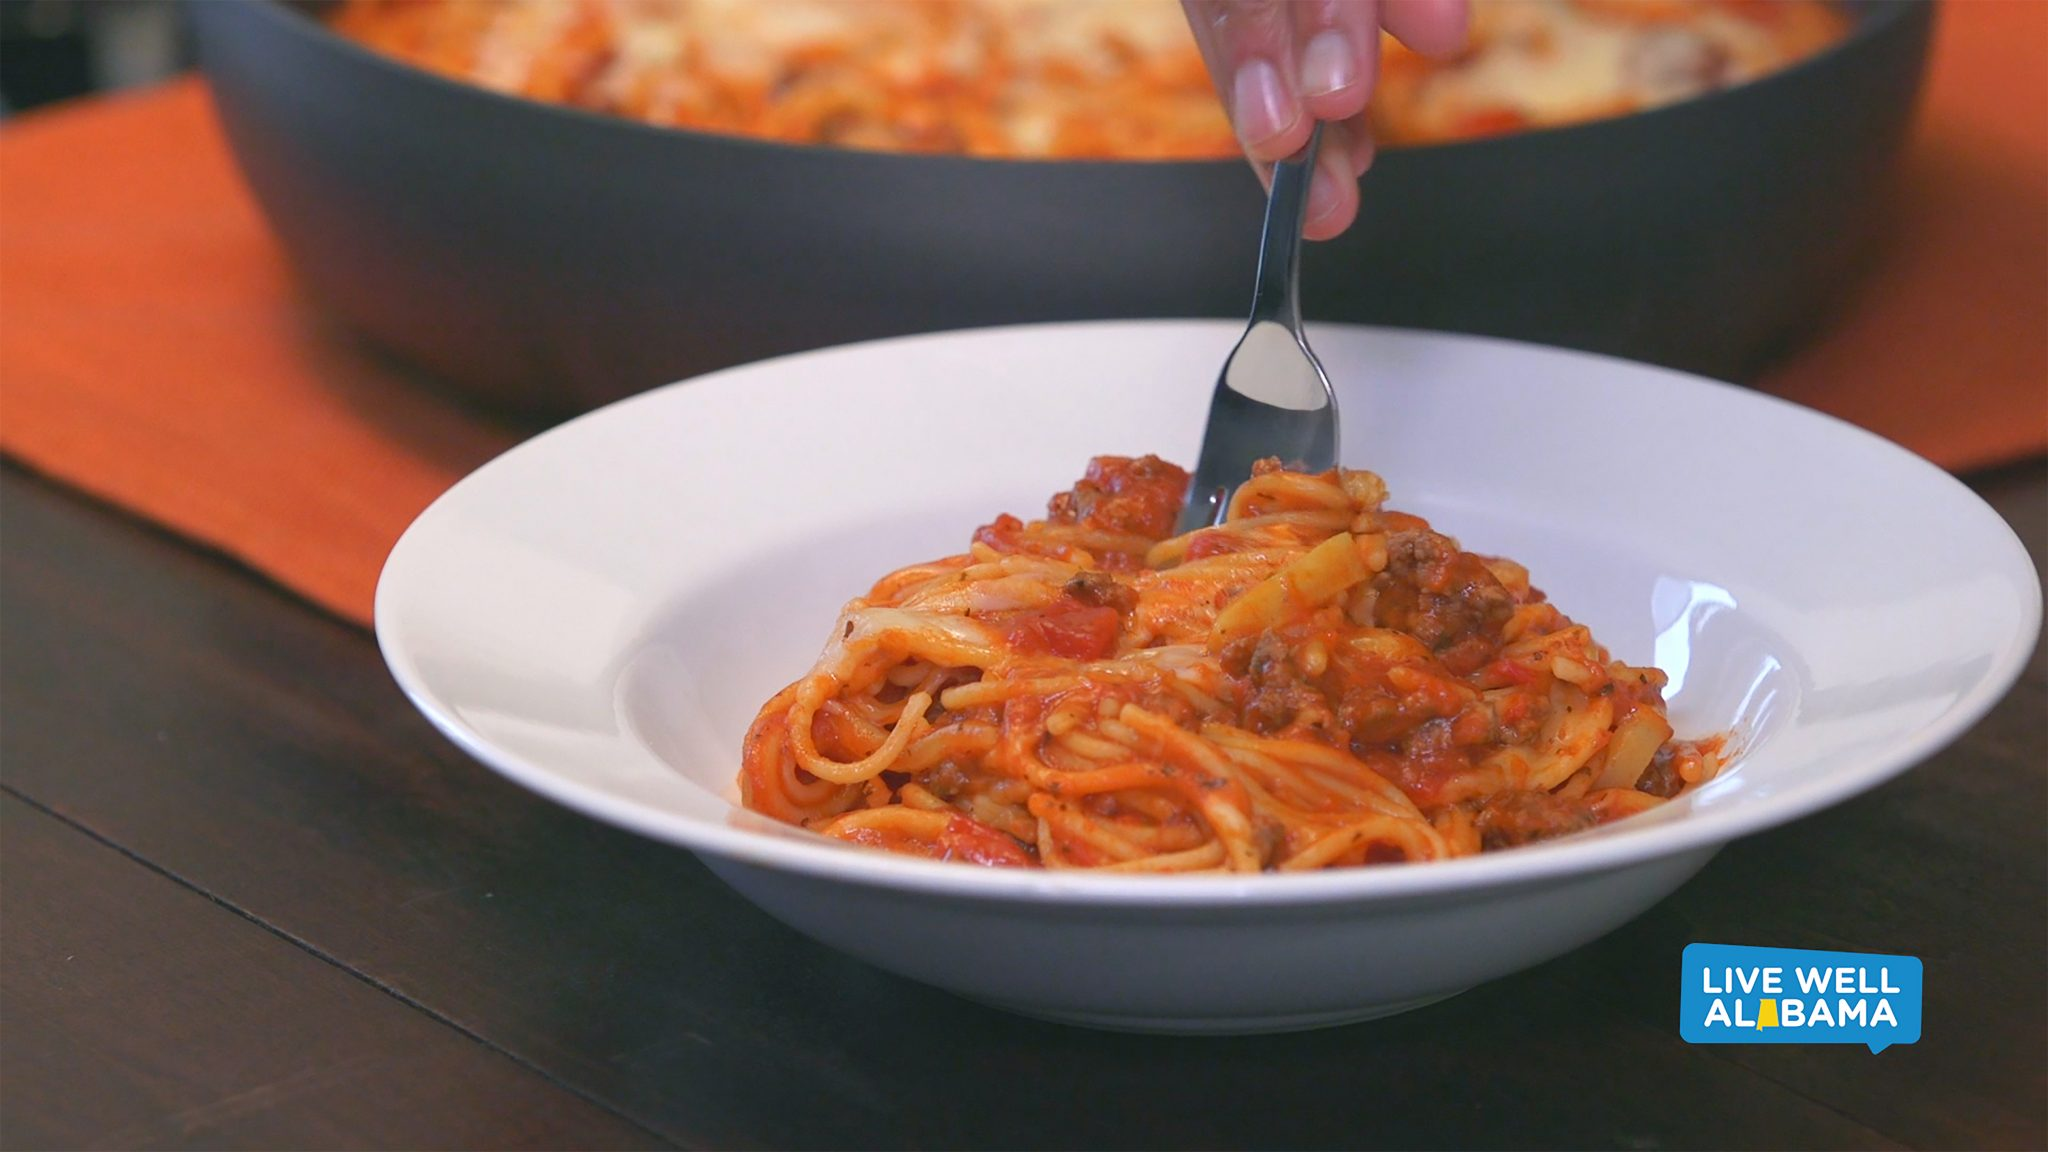 Live Well Alabama recipe, Skillet Spaghetti.